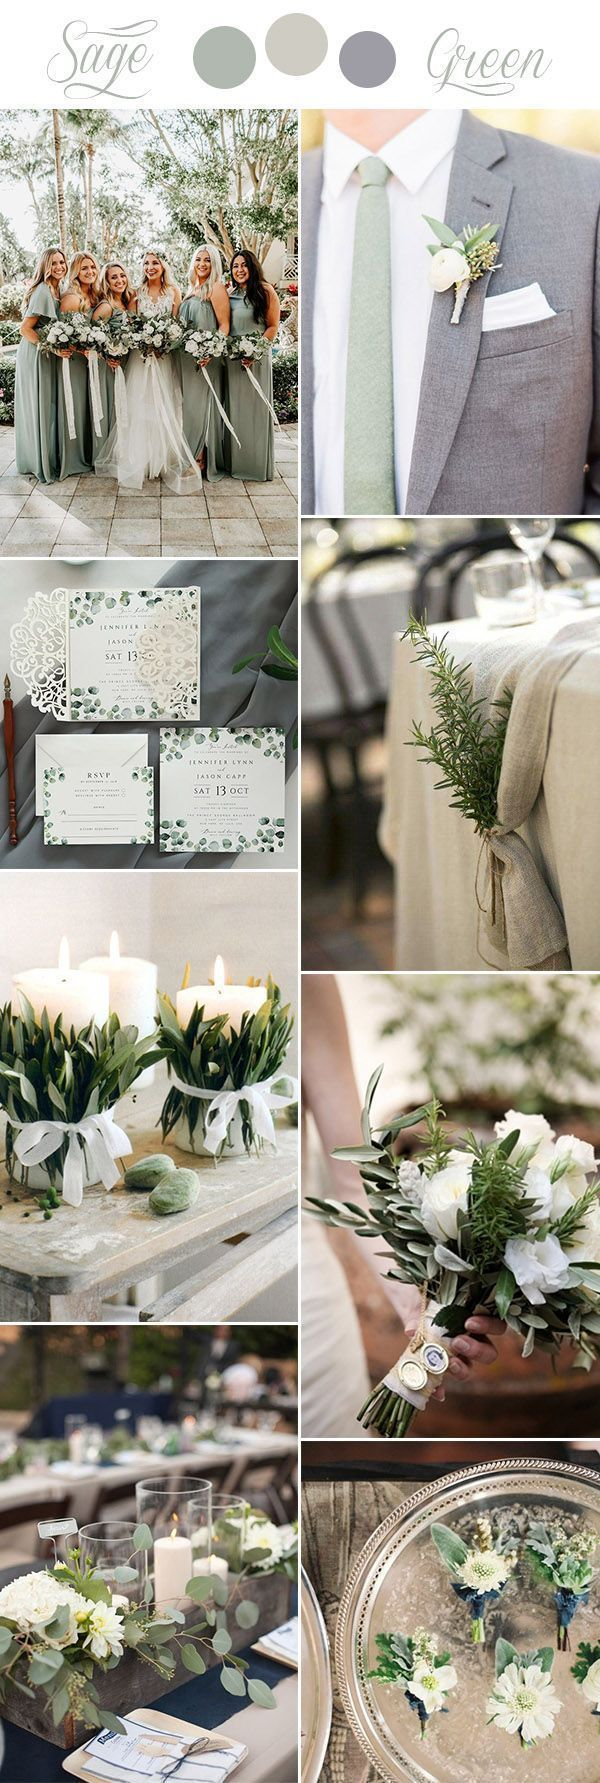 Photo of Say green, beige and gray rustic chic wedding colors #beige #wedding – wedding